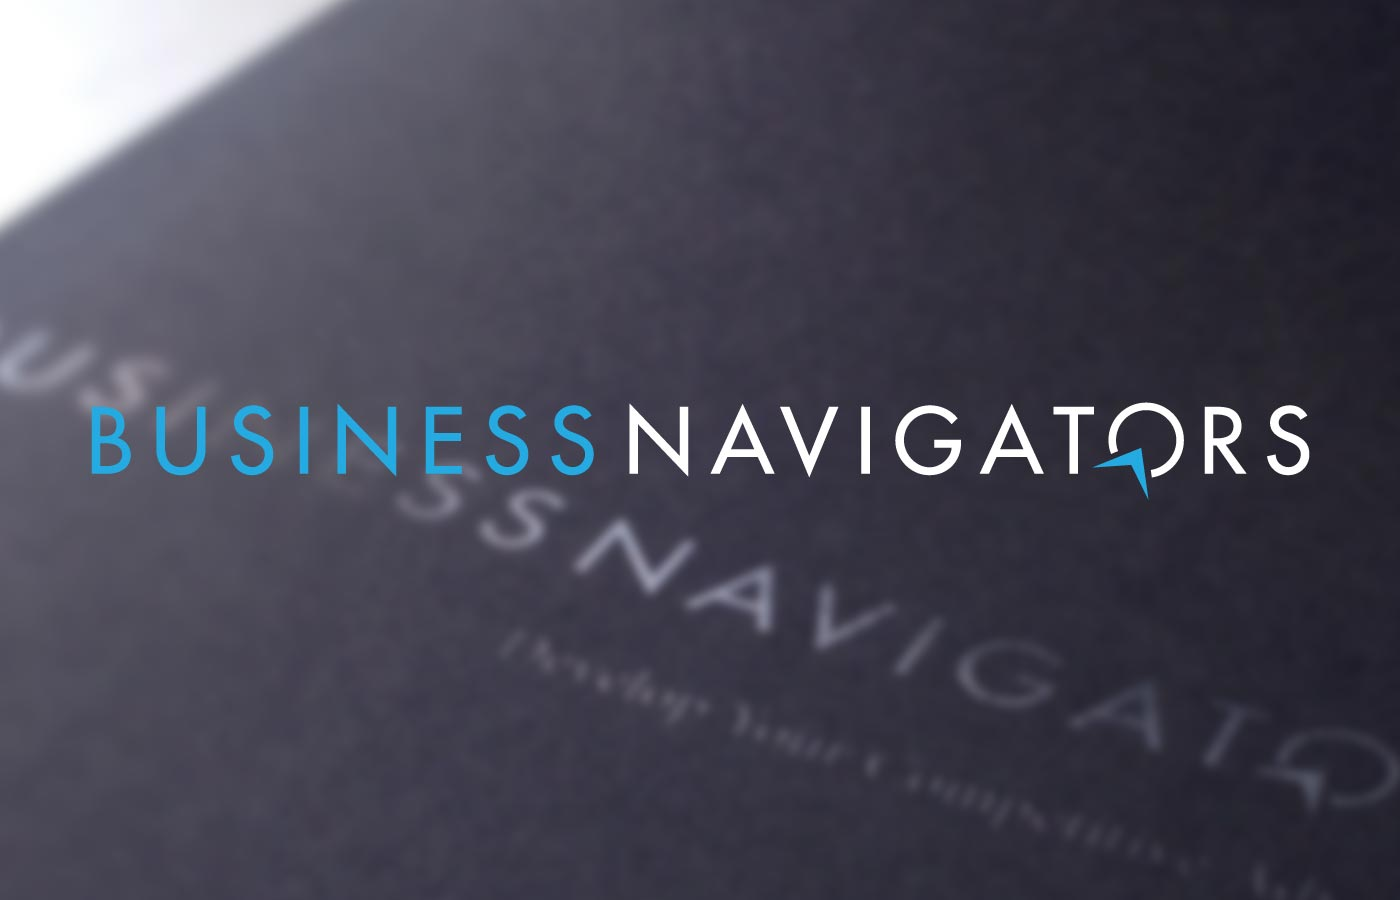 Business Navigators Graphic Design